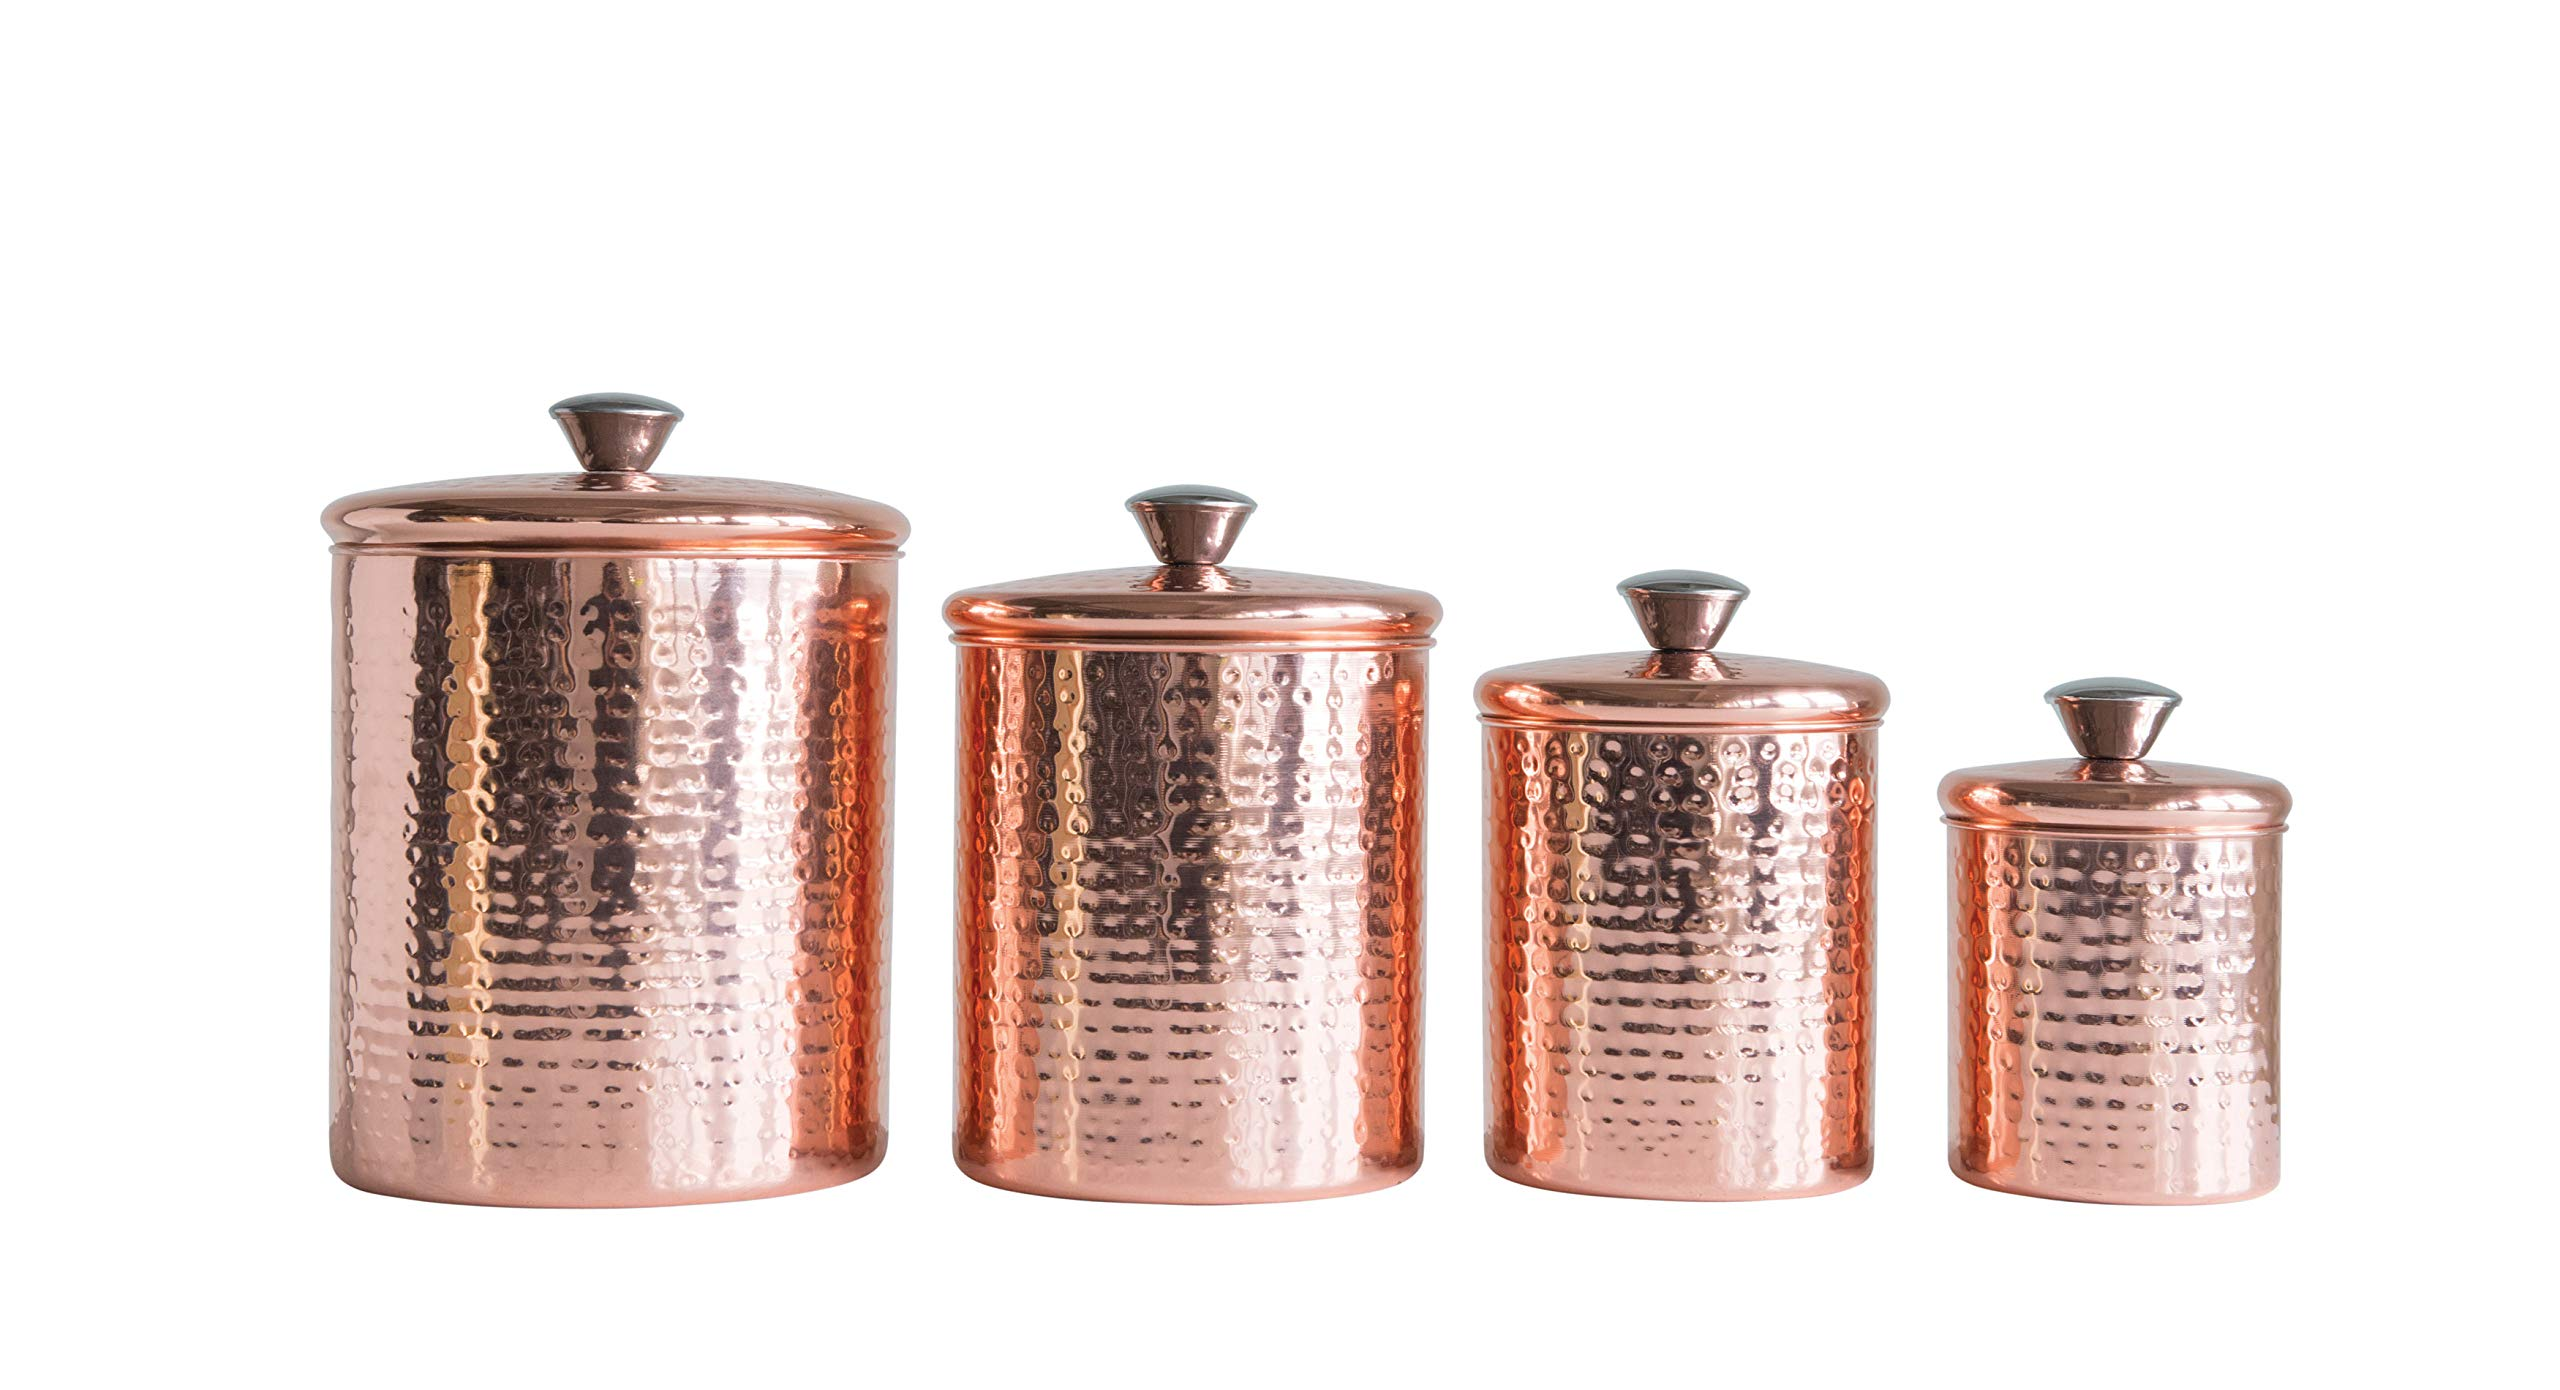 Creative Co-Op Hammered Stainless Steel Canisters with Lids in Copper Finish (Set of 4 Sizes)